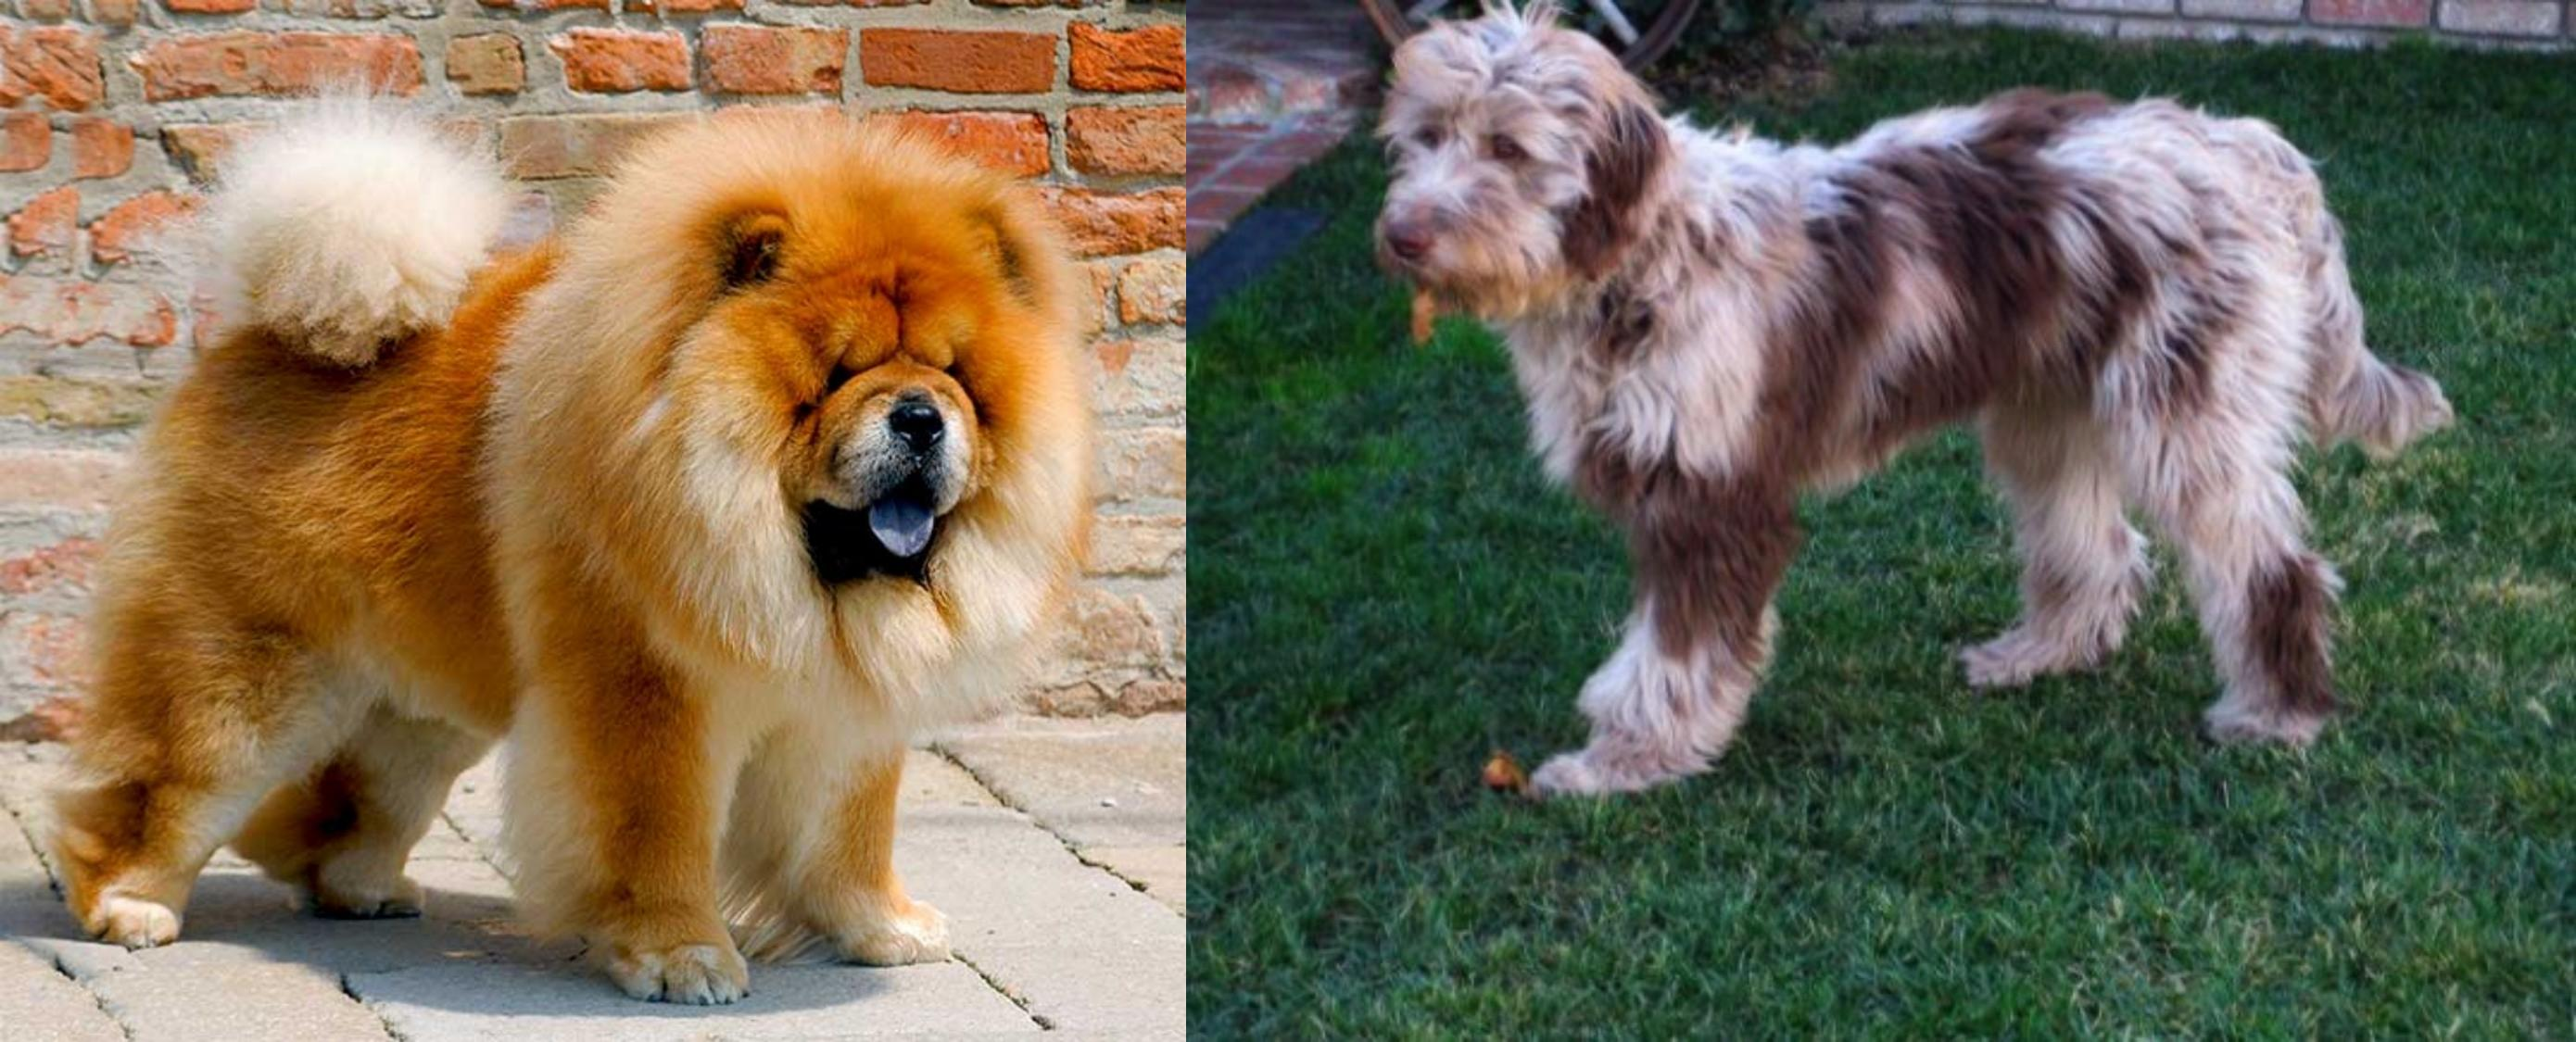 Chow Chow vs Aussie Doodles - Breed